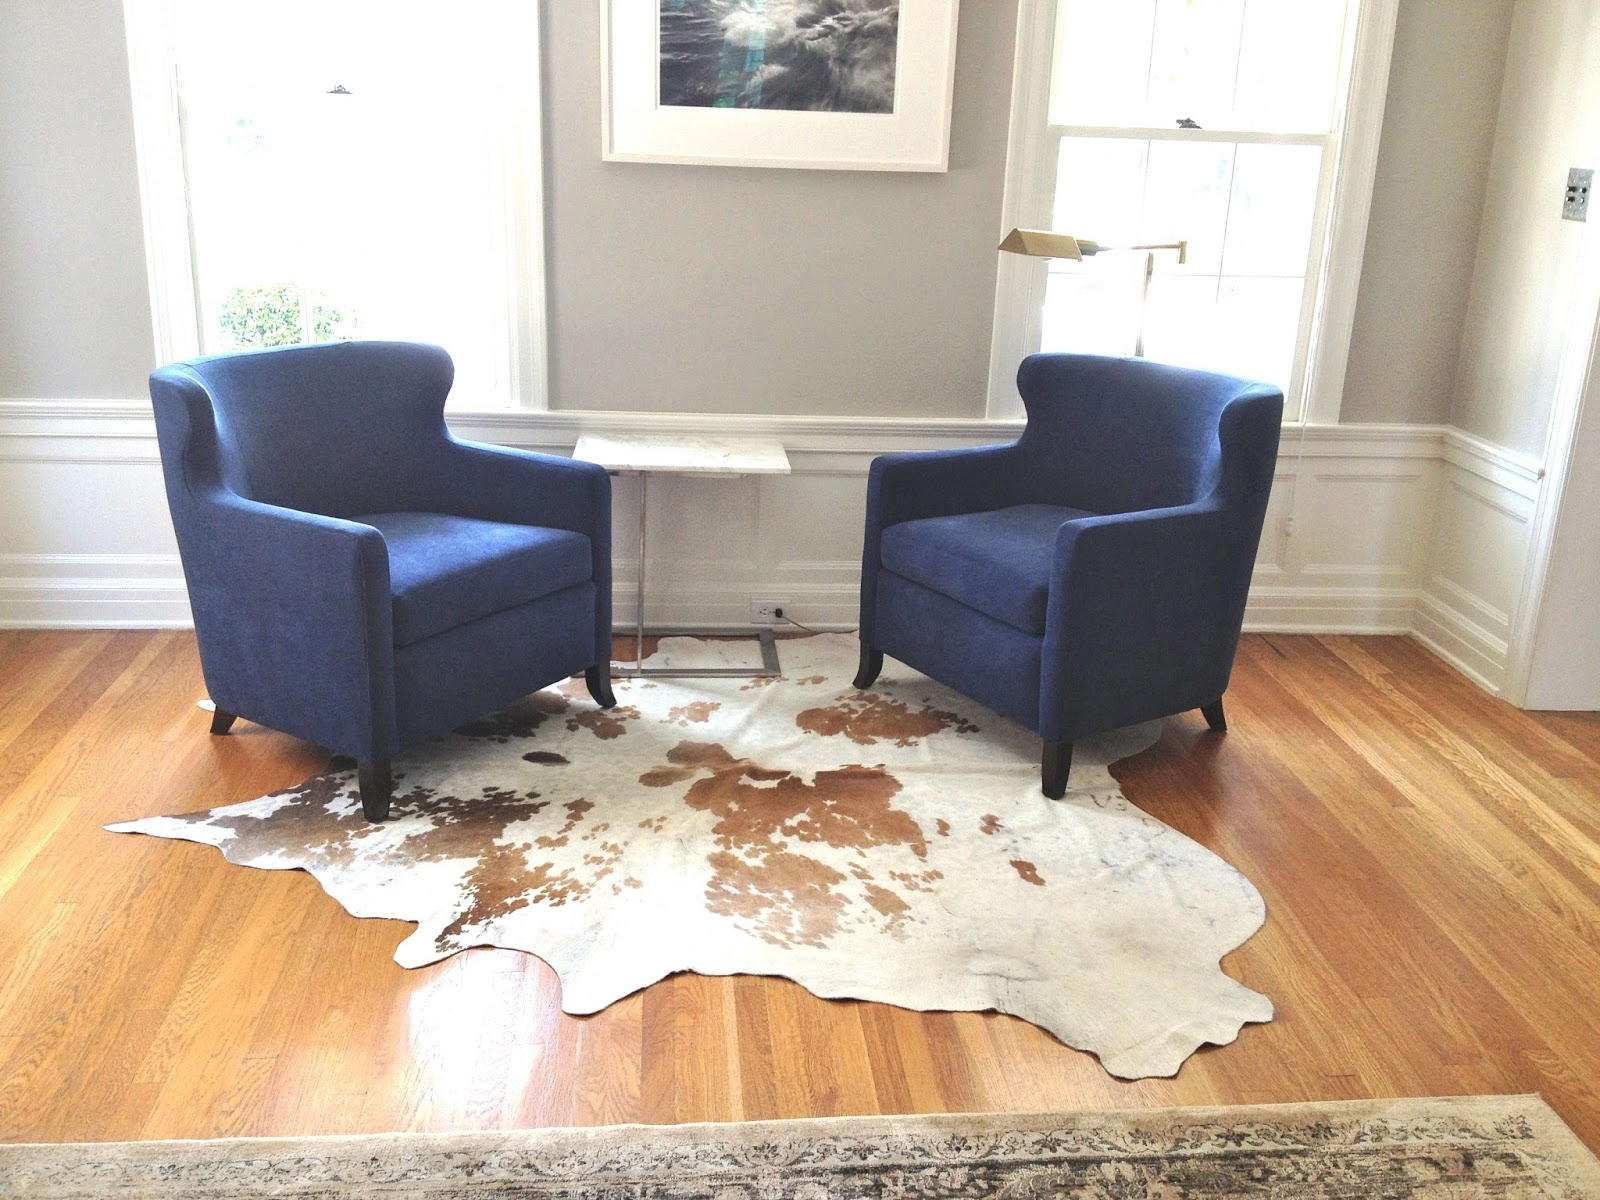 Gray Sofa Navy Chairs Corner Beds London Rosa Beltran Design Pair Of Blue For Sale